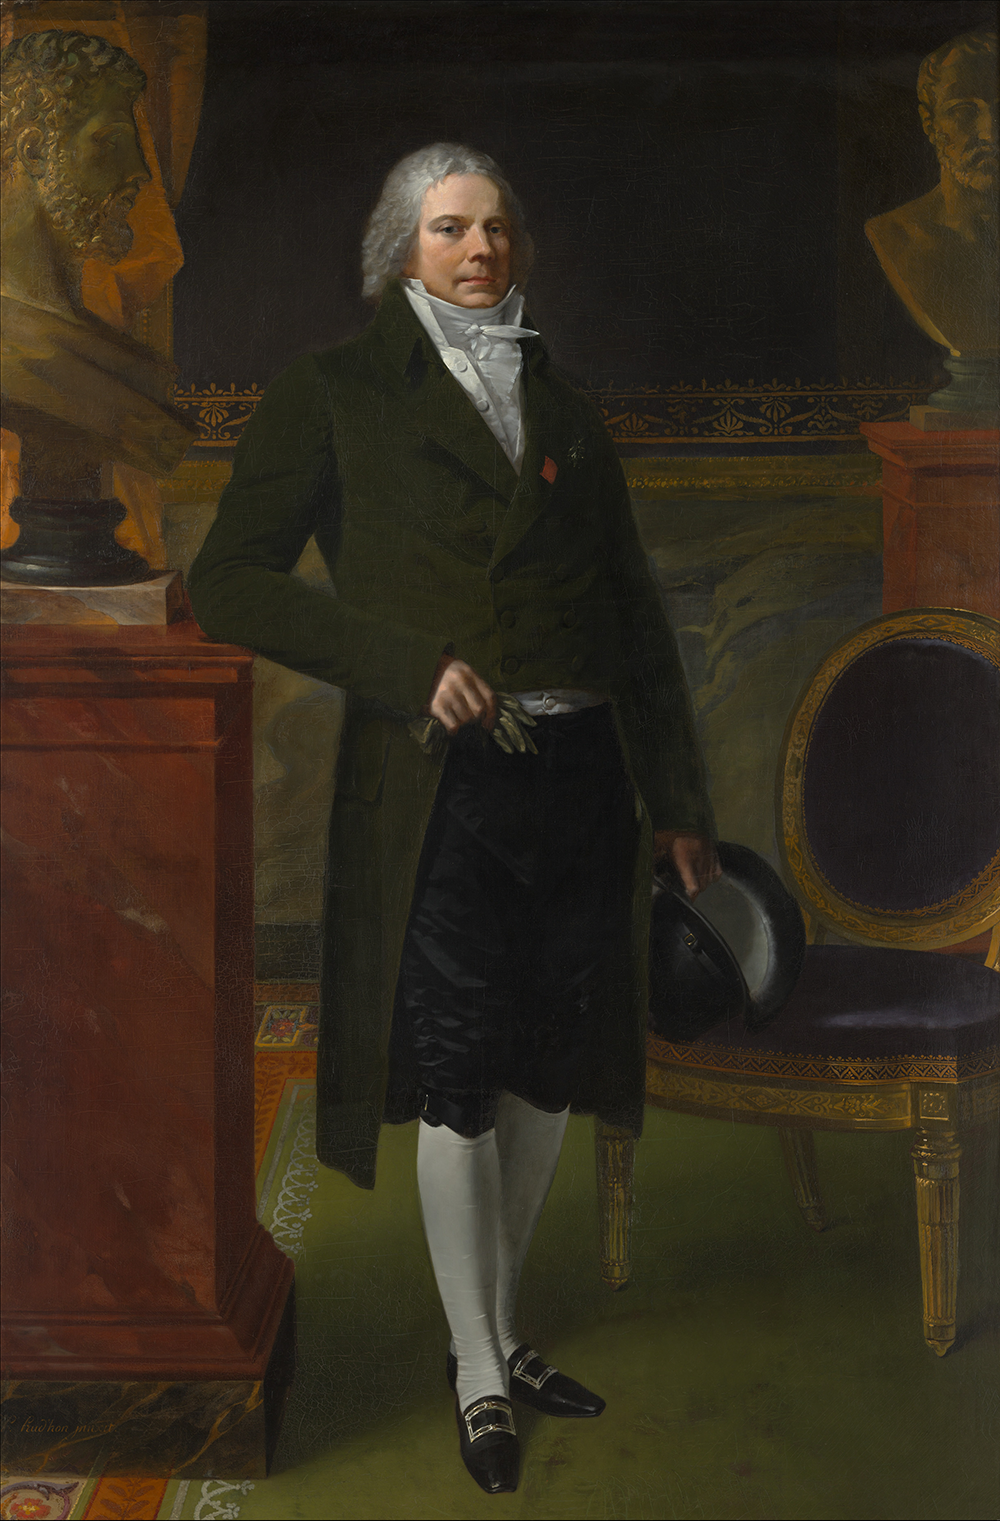 Charles Maurice de Talleyrand Périgord (1754–1838), Prince de Talleyrand, by Pierre Paul Prud'hon, 1817. The Metropolitan Museum of Art, Purchase, Mrs. Charles Wrightsman Gift, in memory of Jacqueline Bouvier Kennedy Onassis, 1994.